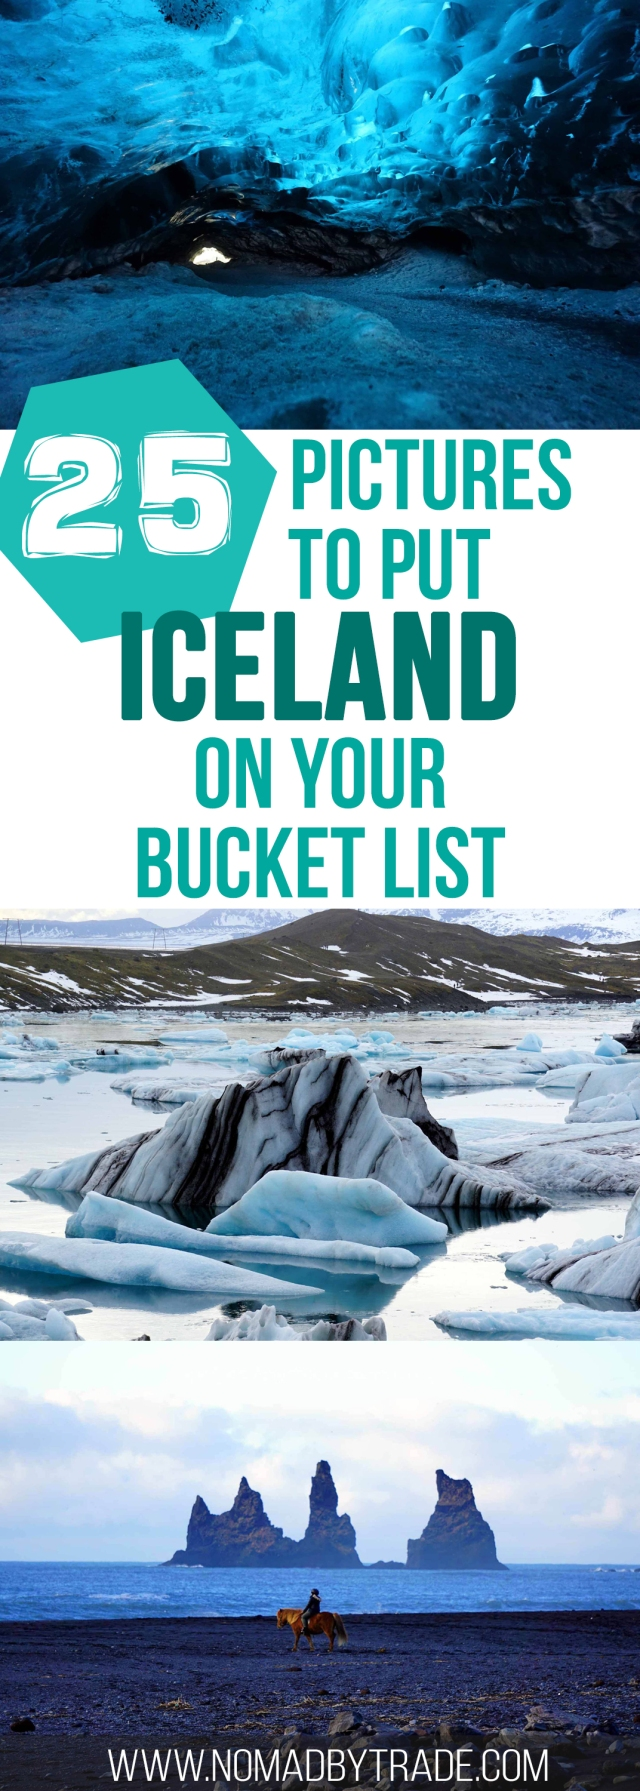 25 photos to put Iceland on your winter bucket list. Includes the Golden Circle, Blue Lagoon, Jokulsarlon, ice cave, and the Northern Lights